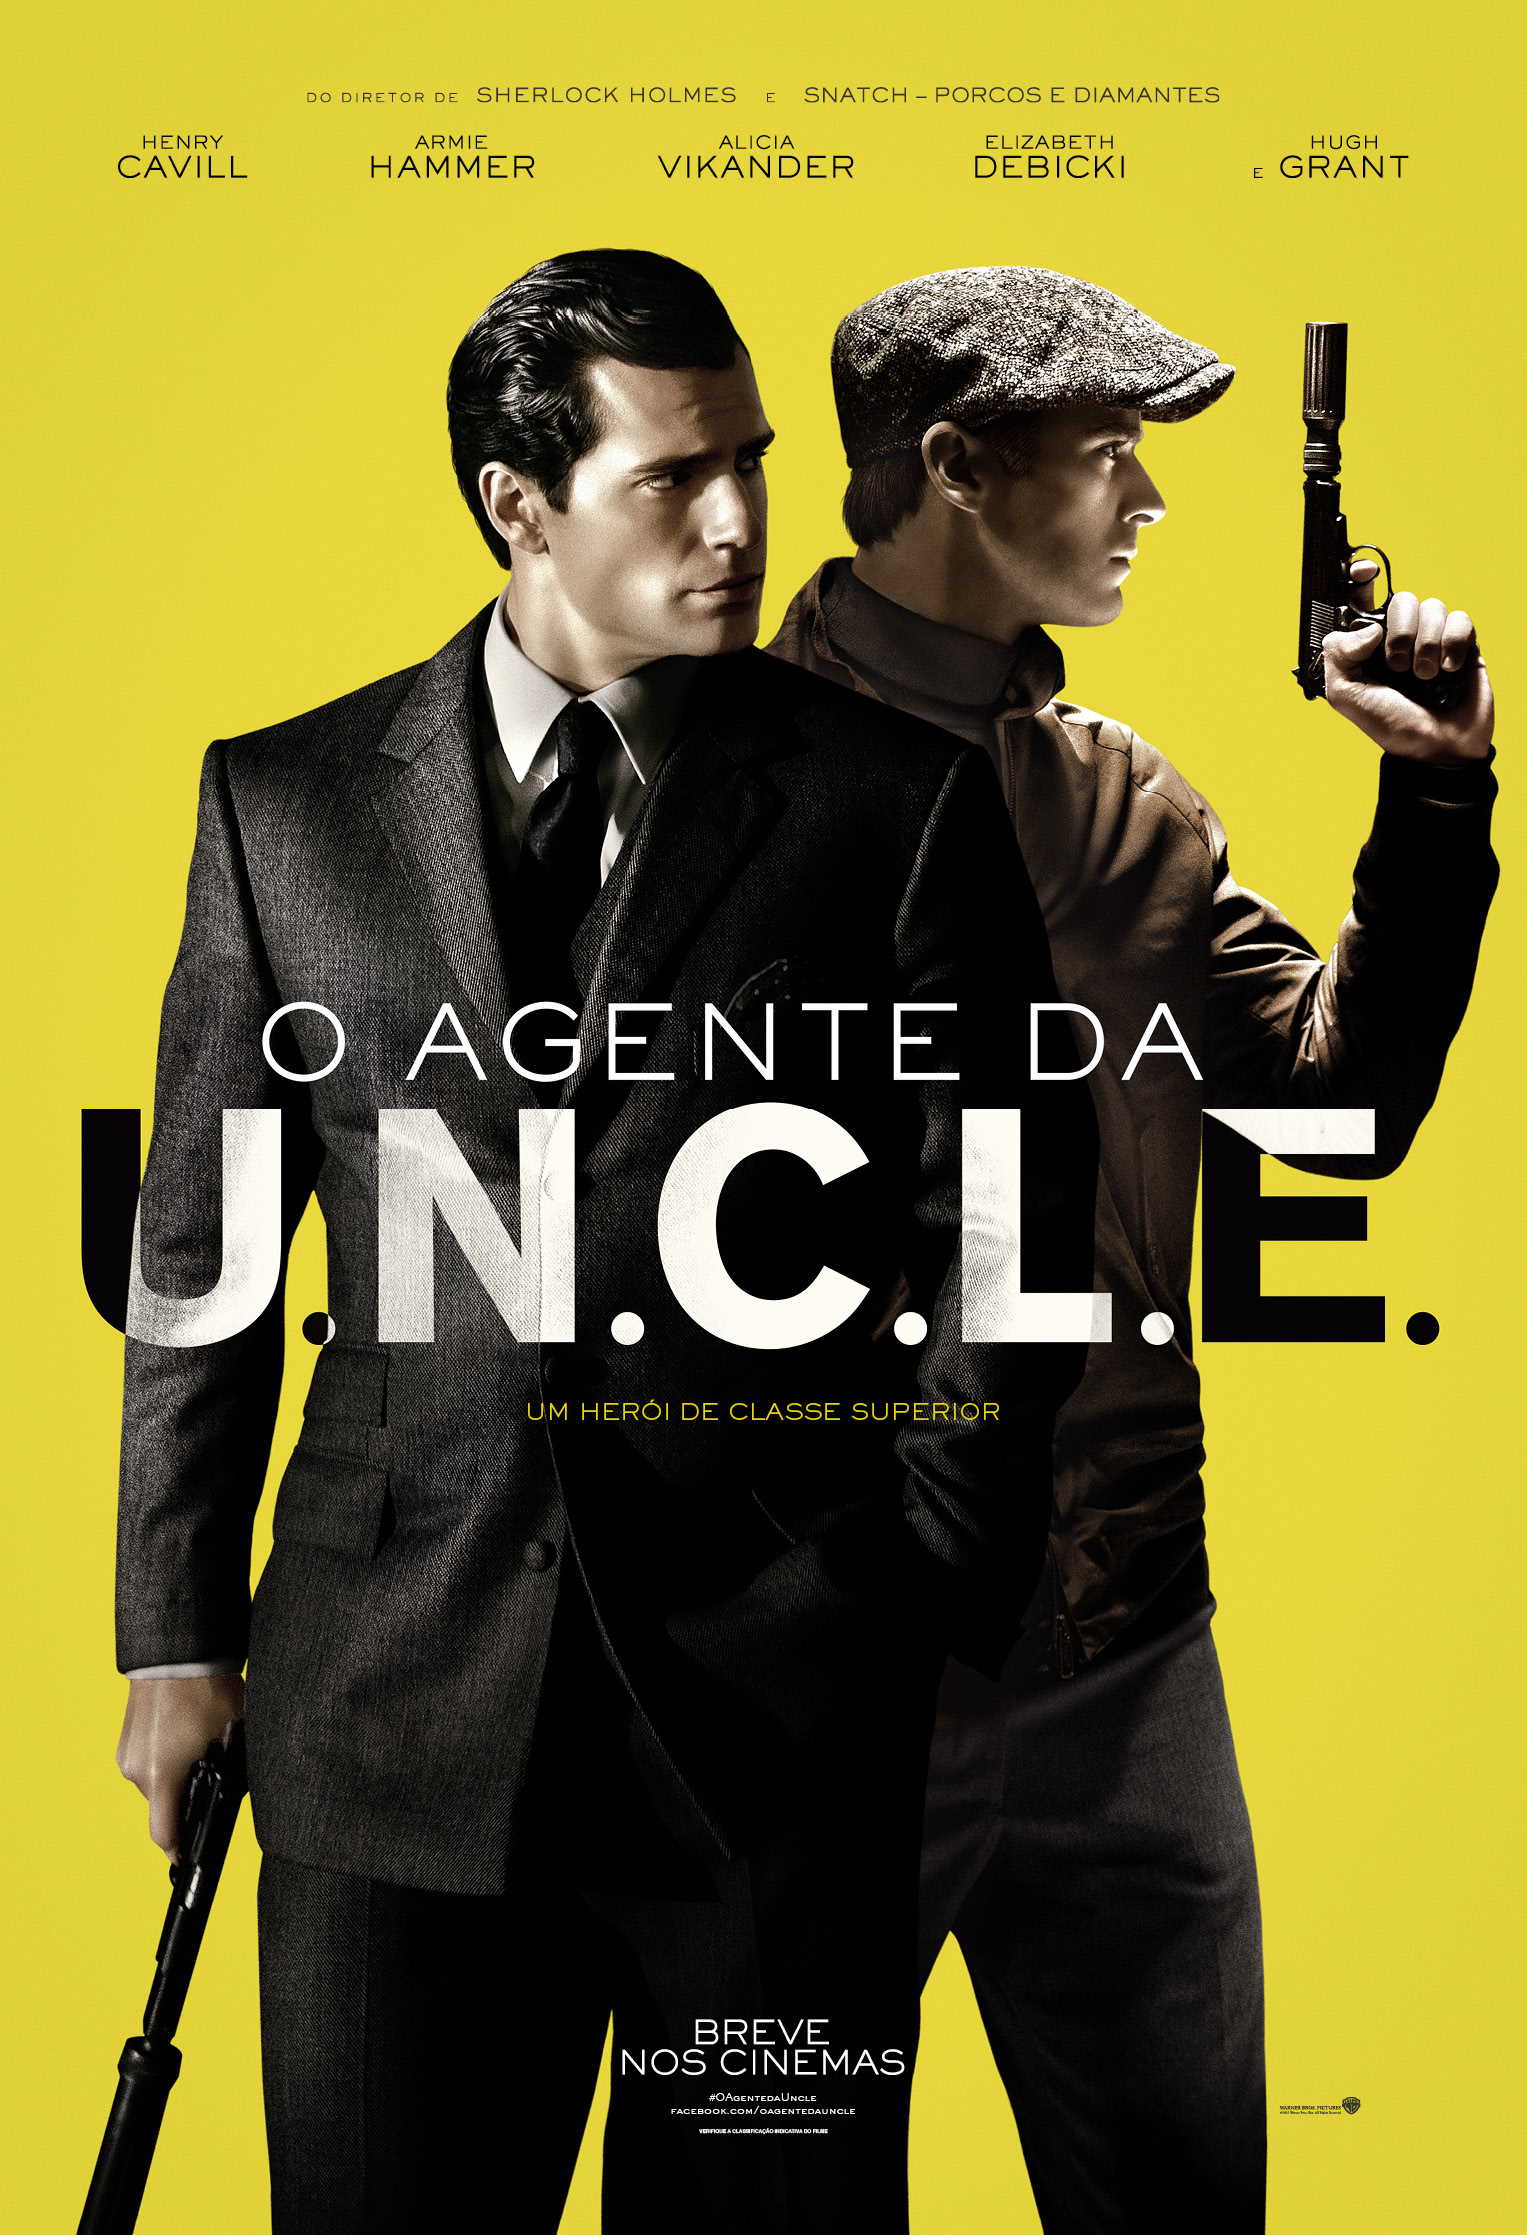 O Agente da UNCLE pôster 2